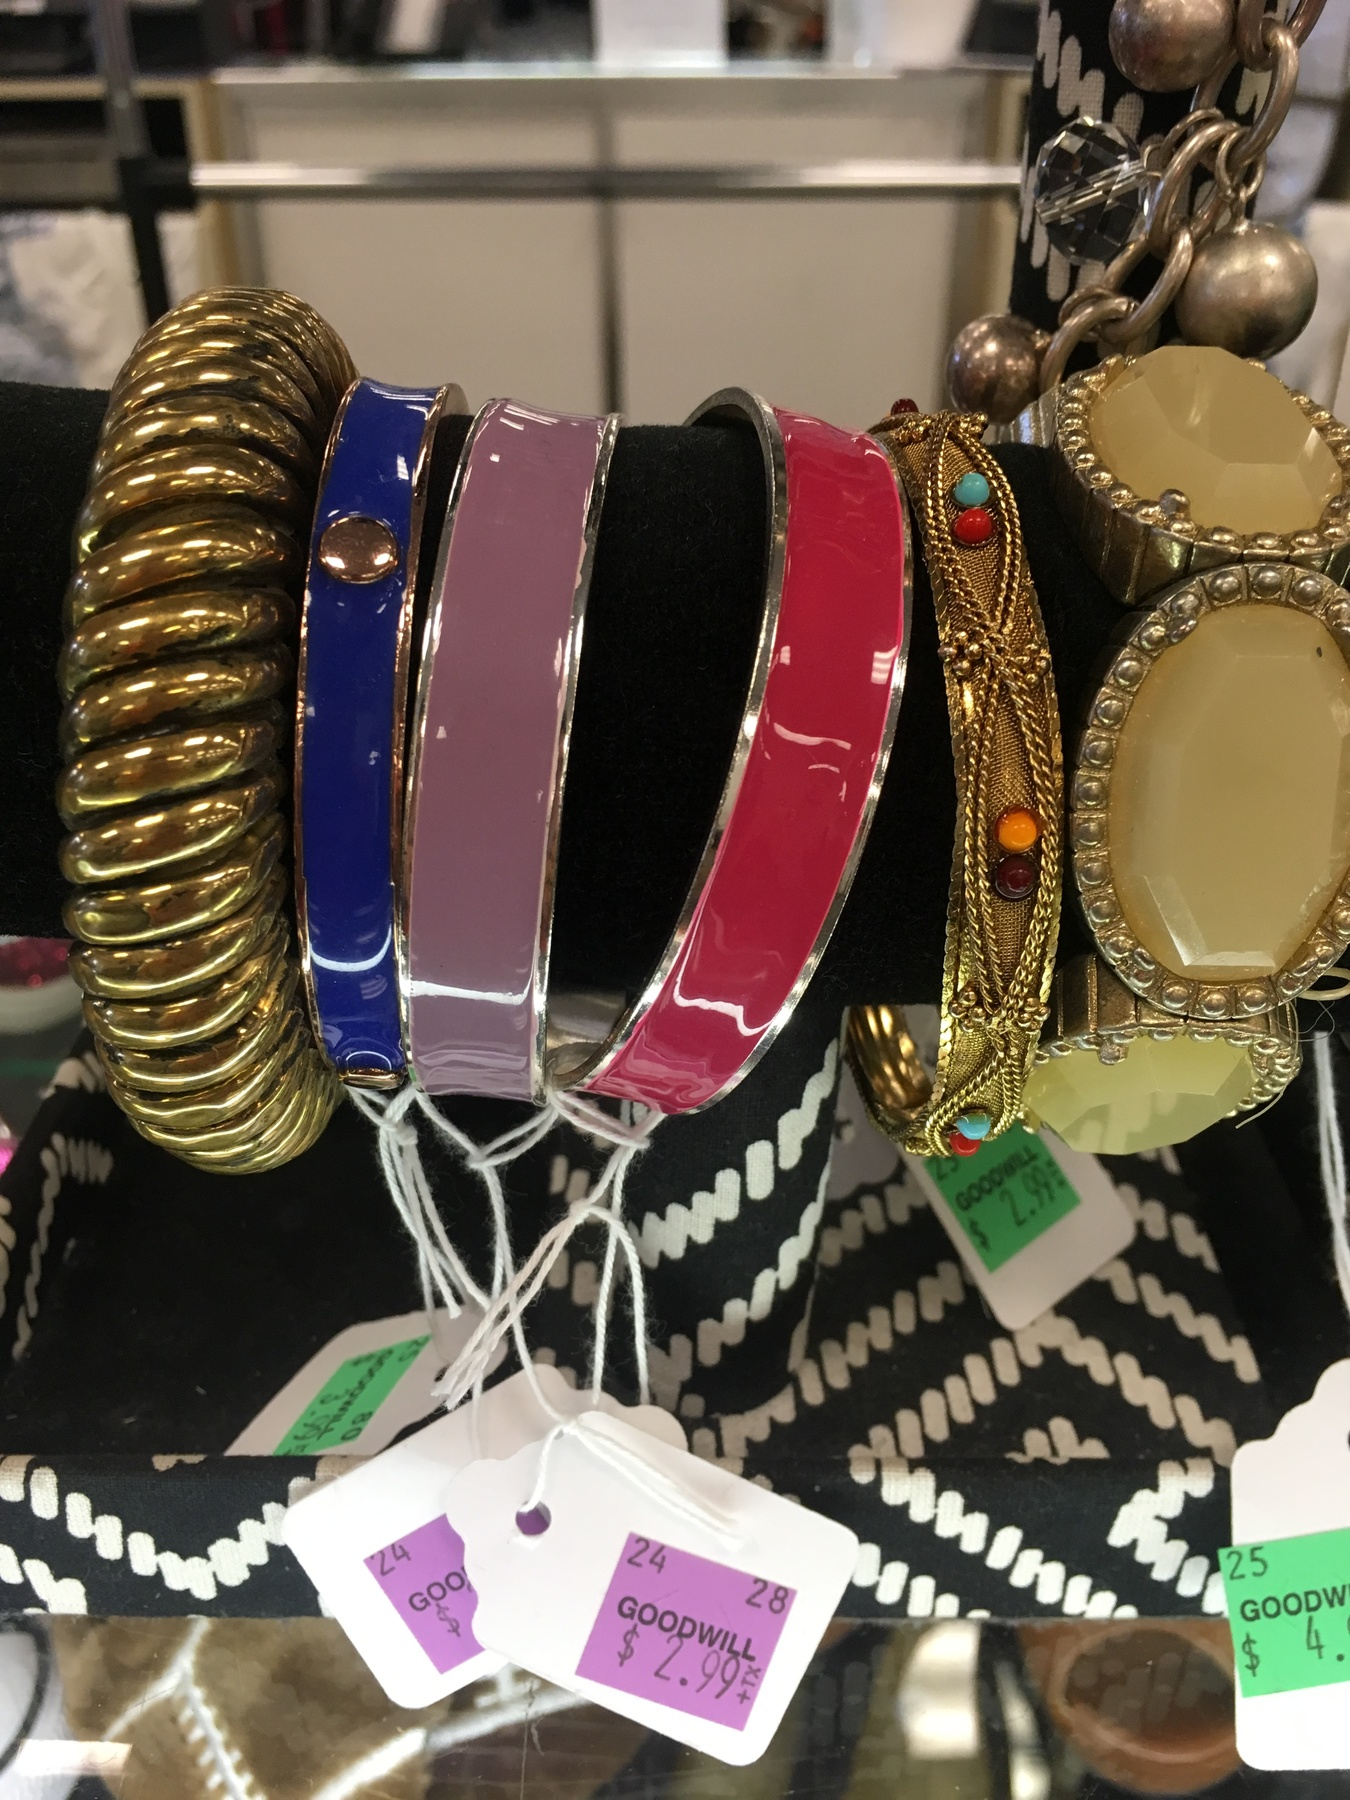 bangles and bracelets found at Kings Highway Goodwill